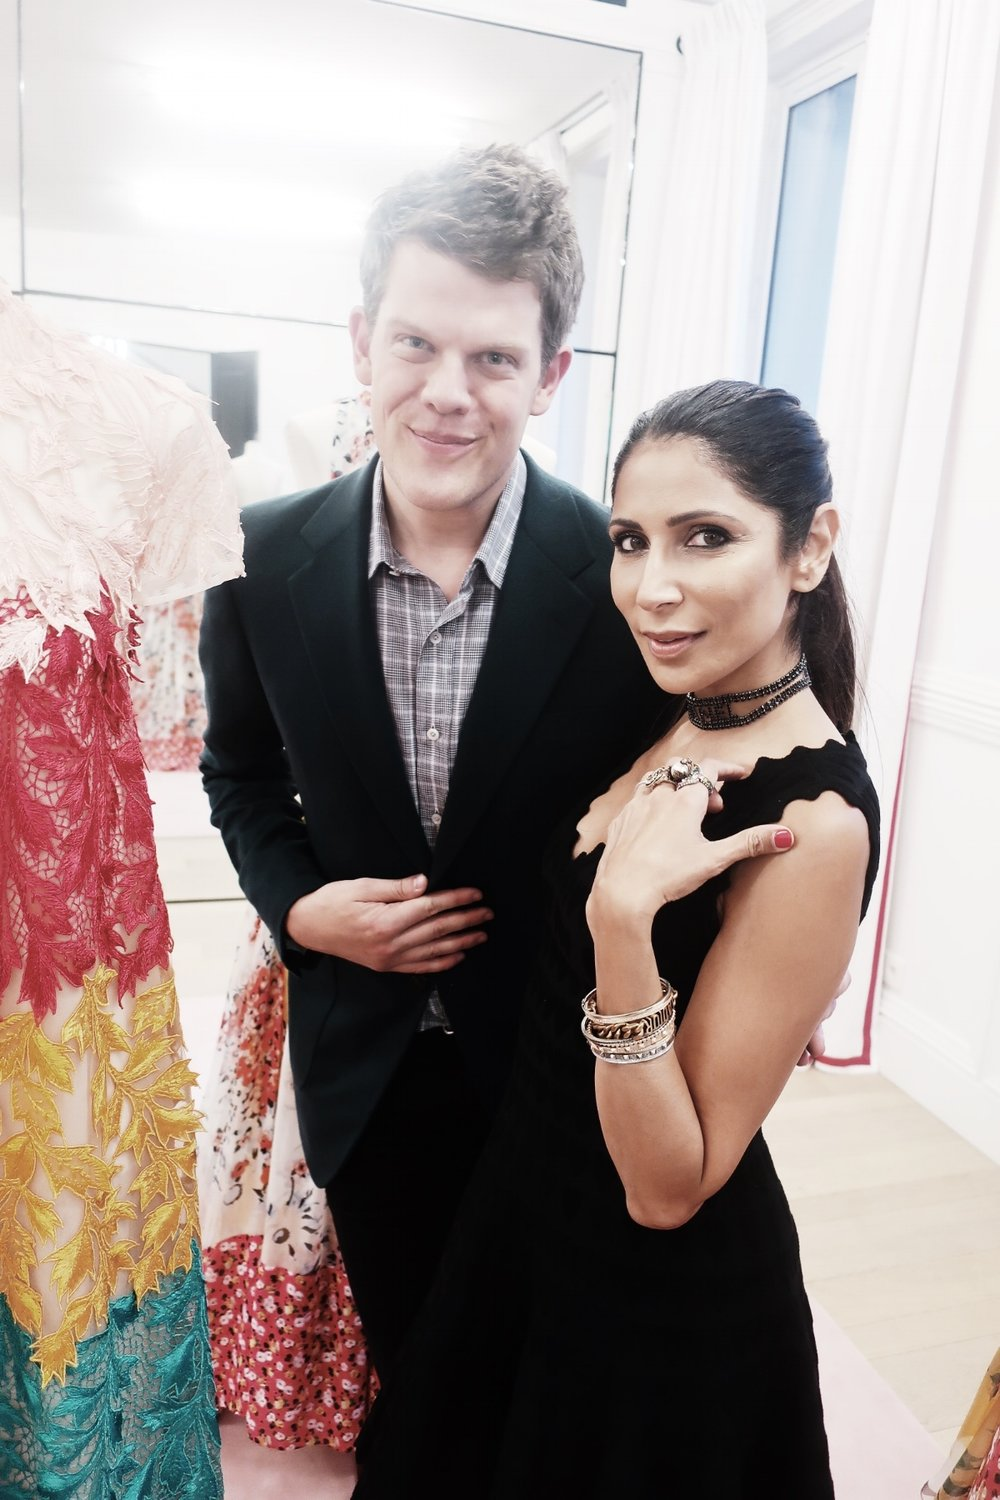 At the    Carolina Herrera    showroom with the incredibly talented and super sweet Wes Gordon, Creative Director, Carolina Herrera. He is the epitome of a true gentleman!!